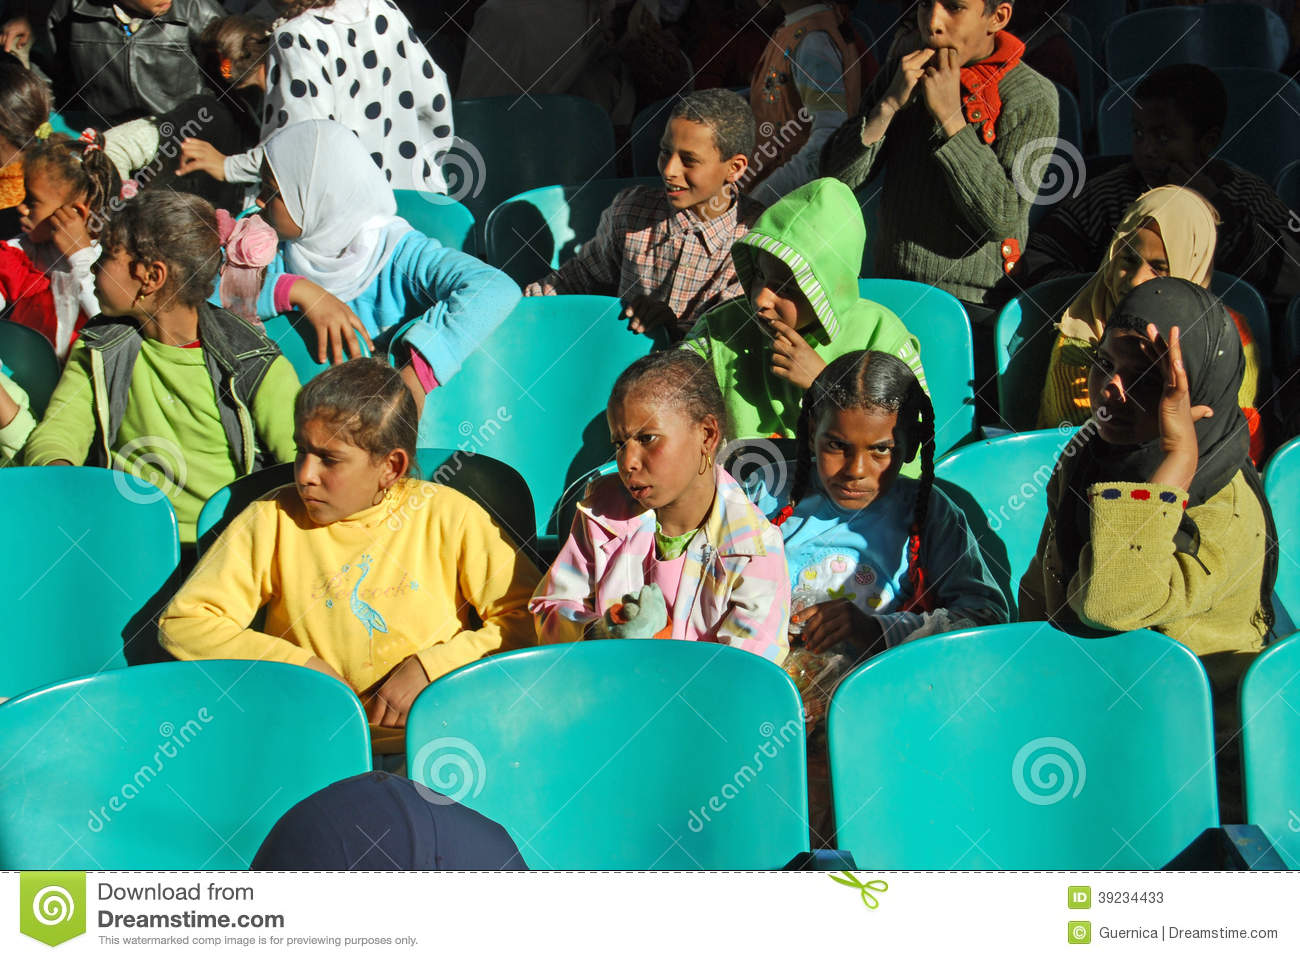 girls desk chairs office chair handles educating poor kids in egypt editorial stock photo - image: 39234433